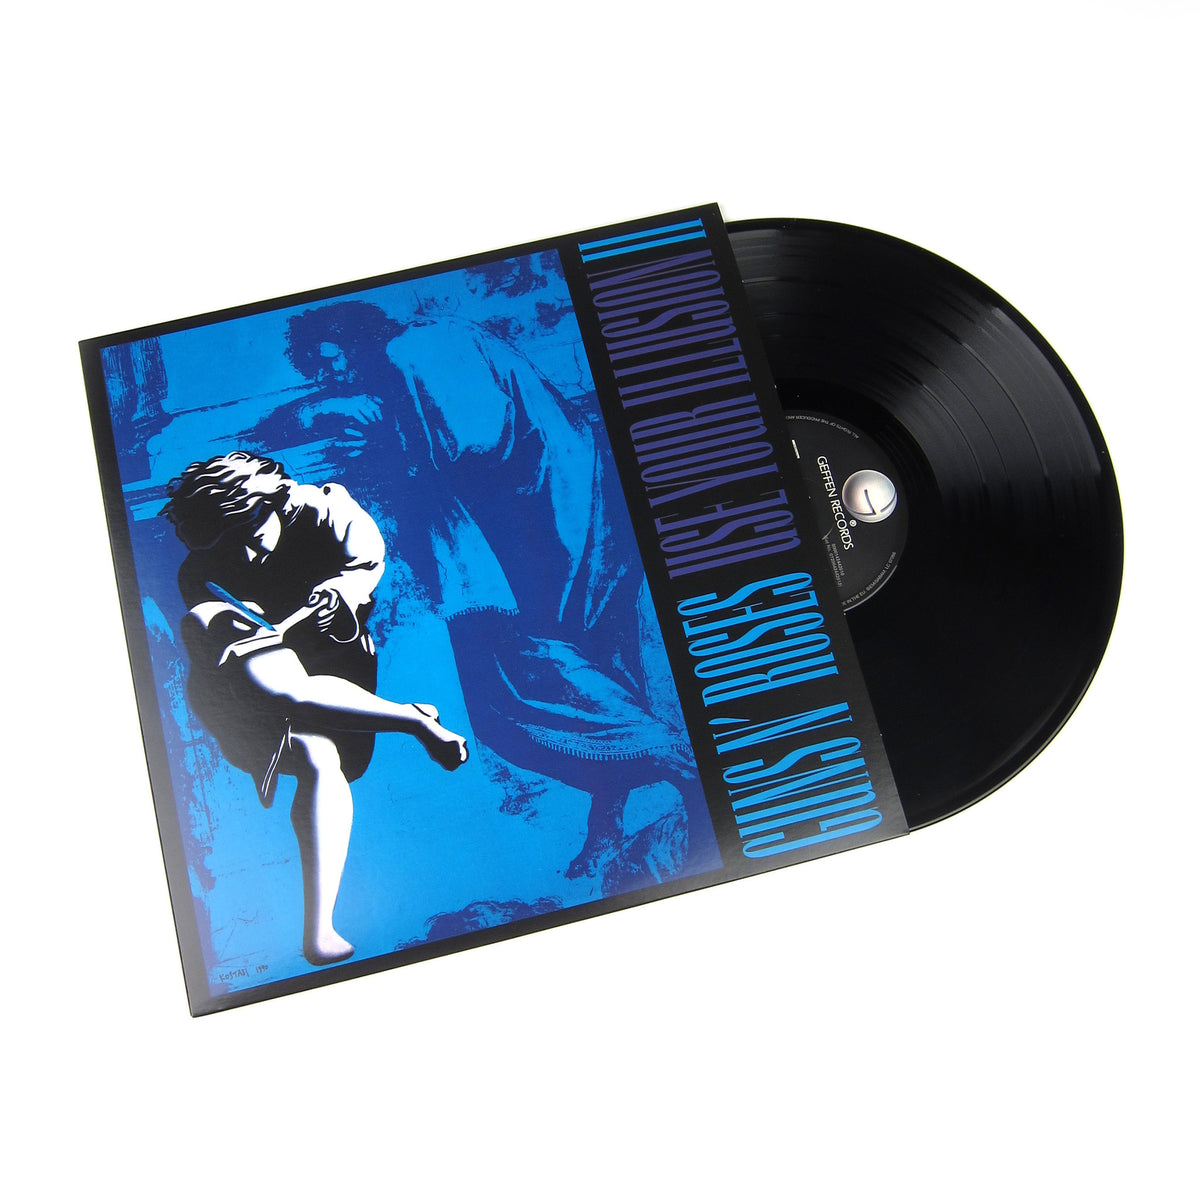 Guns N' Roses: Use Your Illusion II Vinyl 2LP